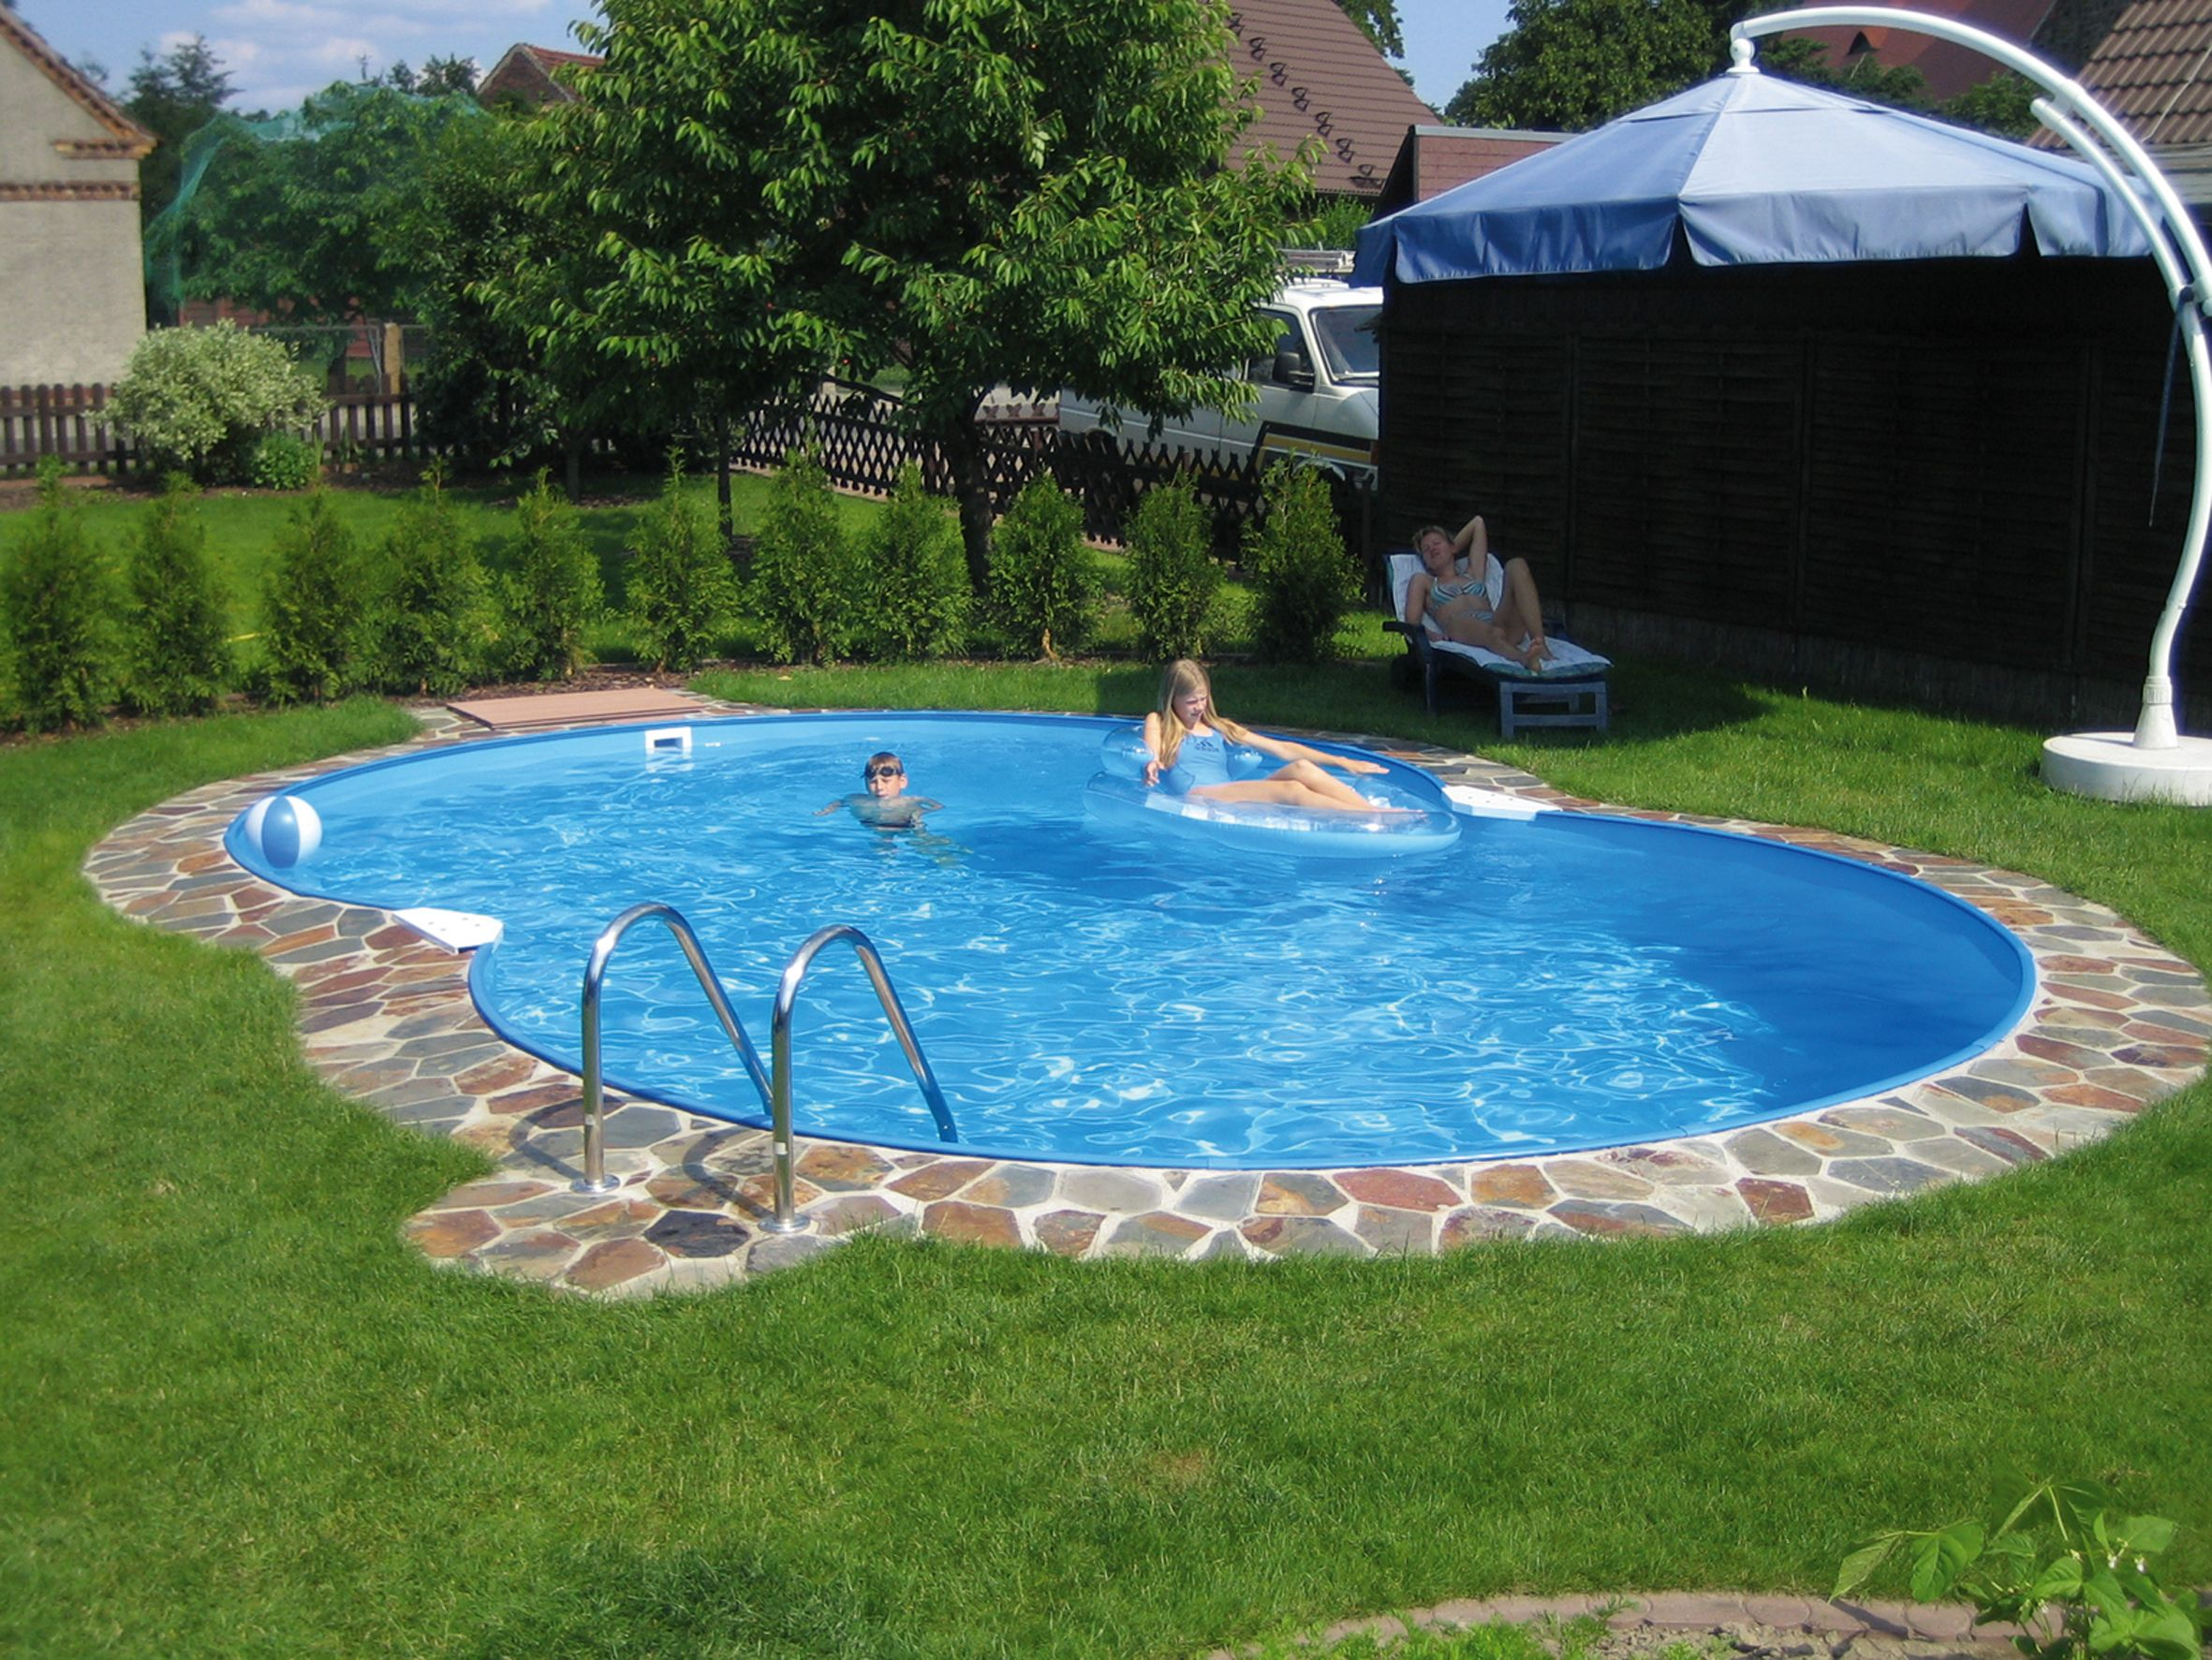 backyard landscaping ideas swimming pool design read more at wwwhomestheticsnetbackyard landscaping ideas swimming pool design homesthetic. beautiful ideas. Home Design Ideas